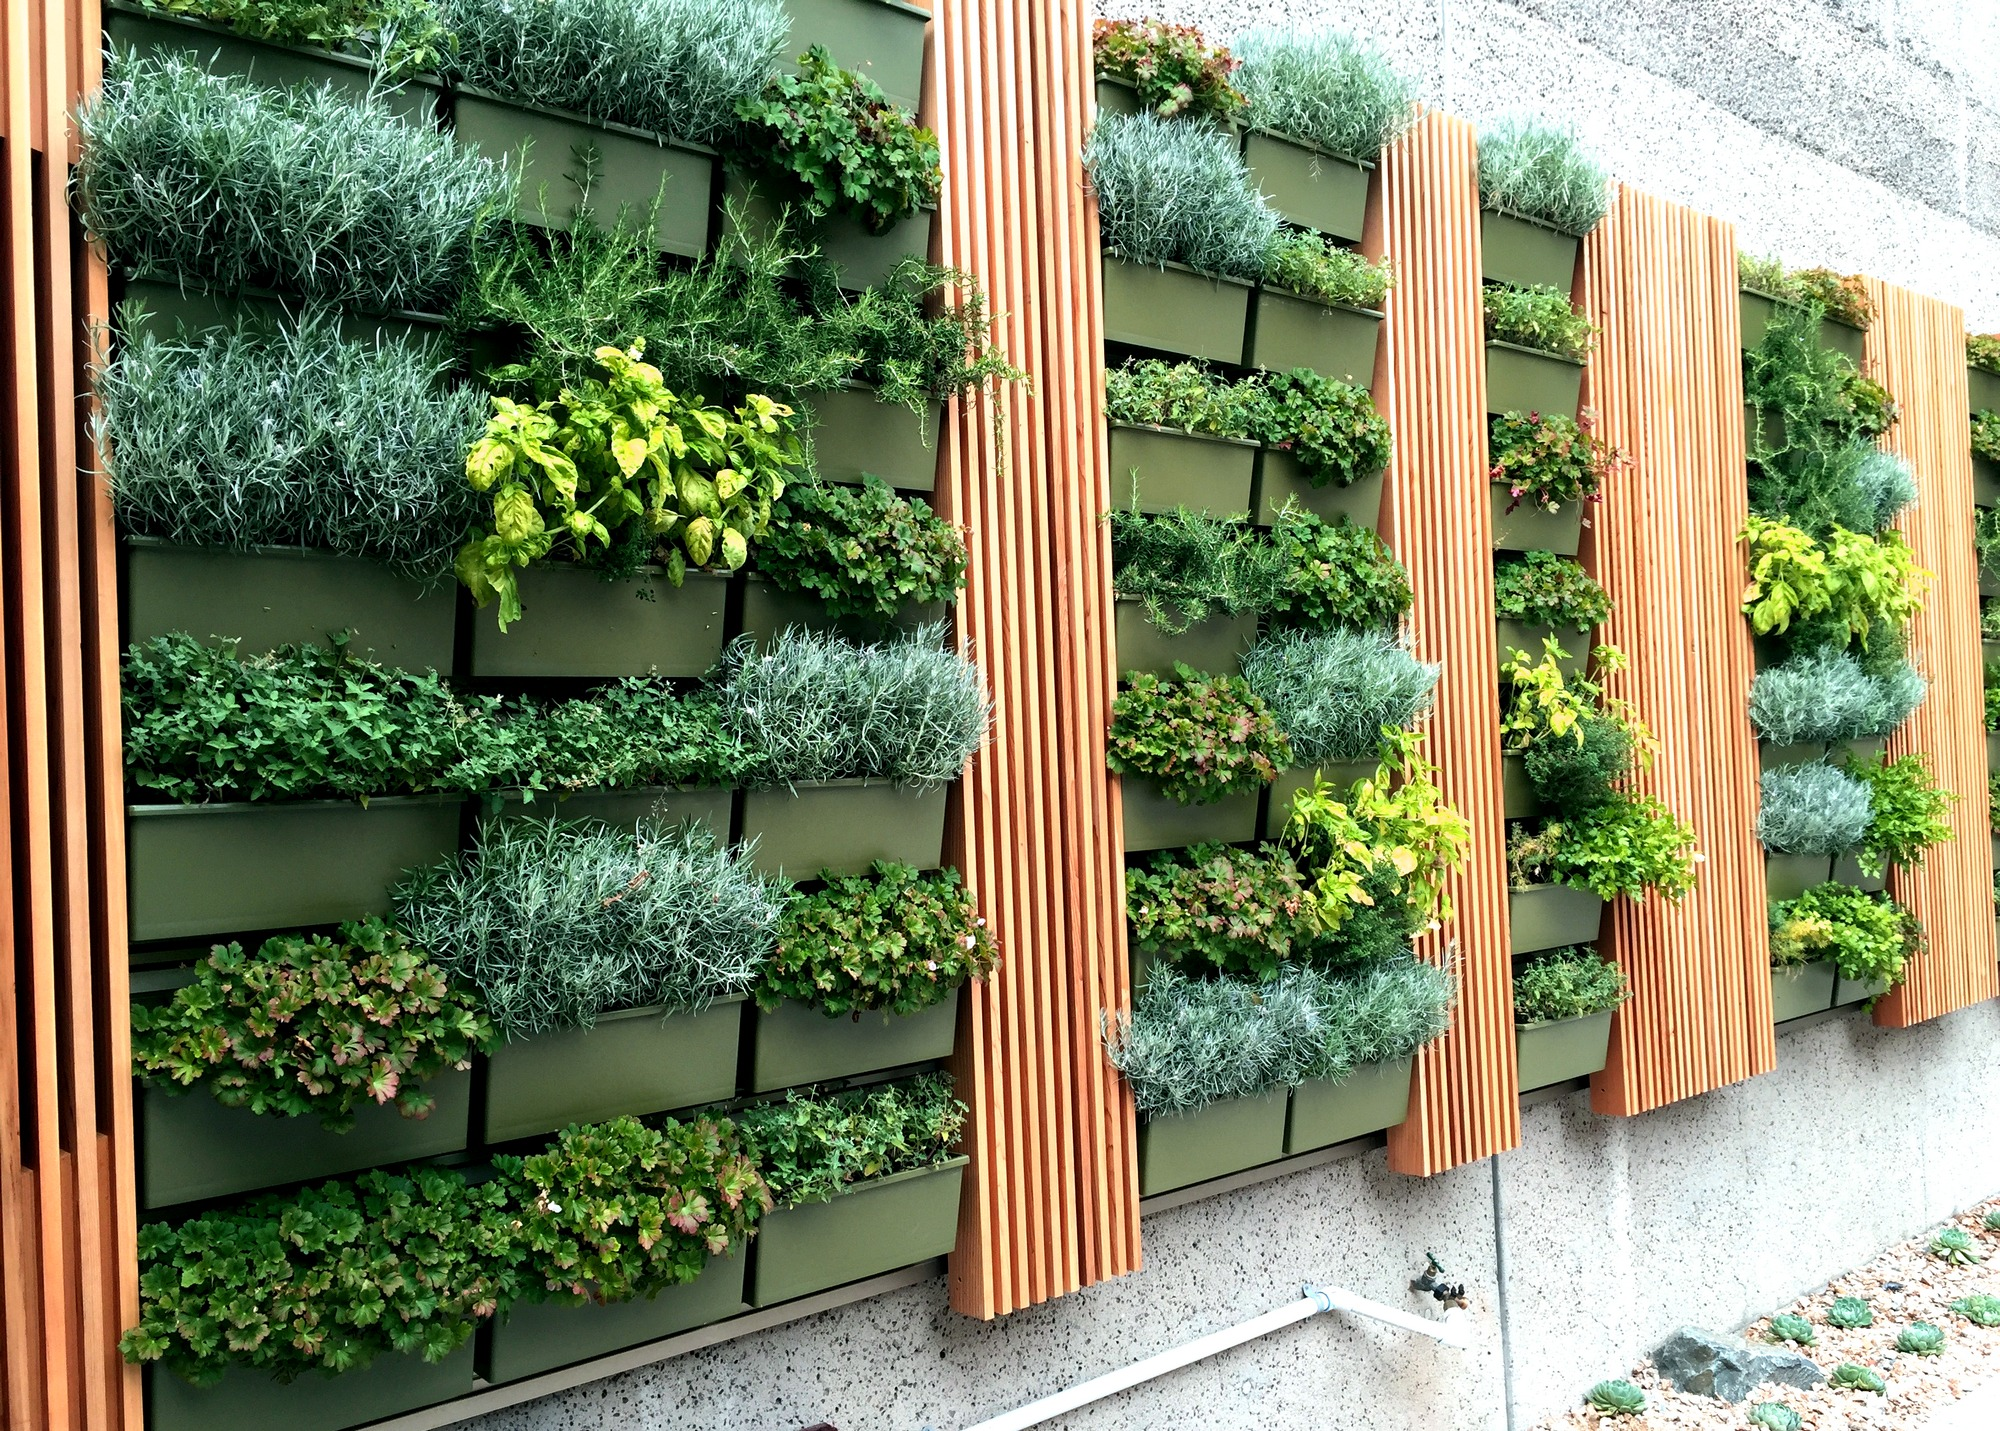 Herb Wall Residential Design Greenleaf Interior Plant Solutions